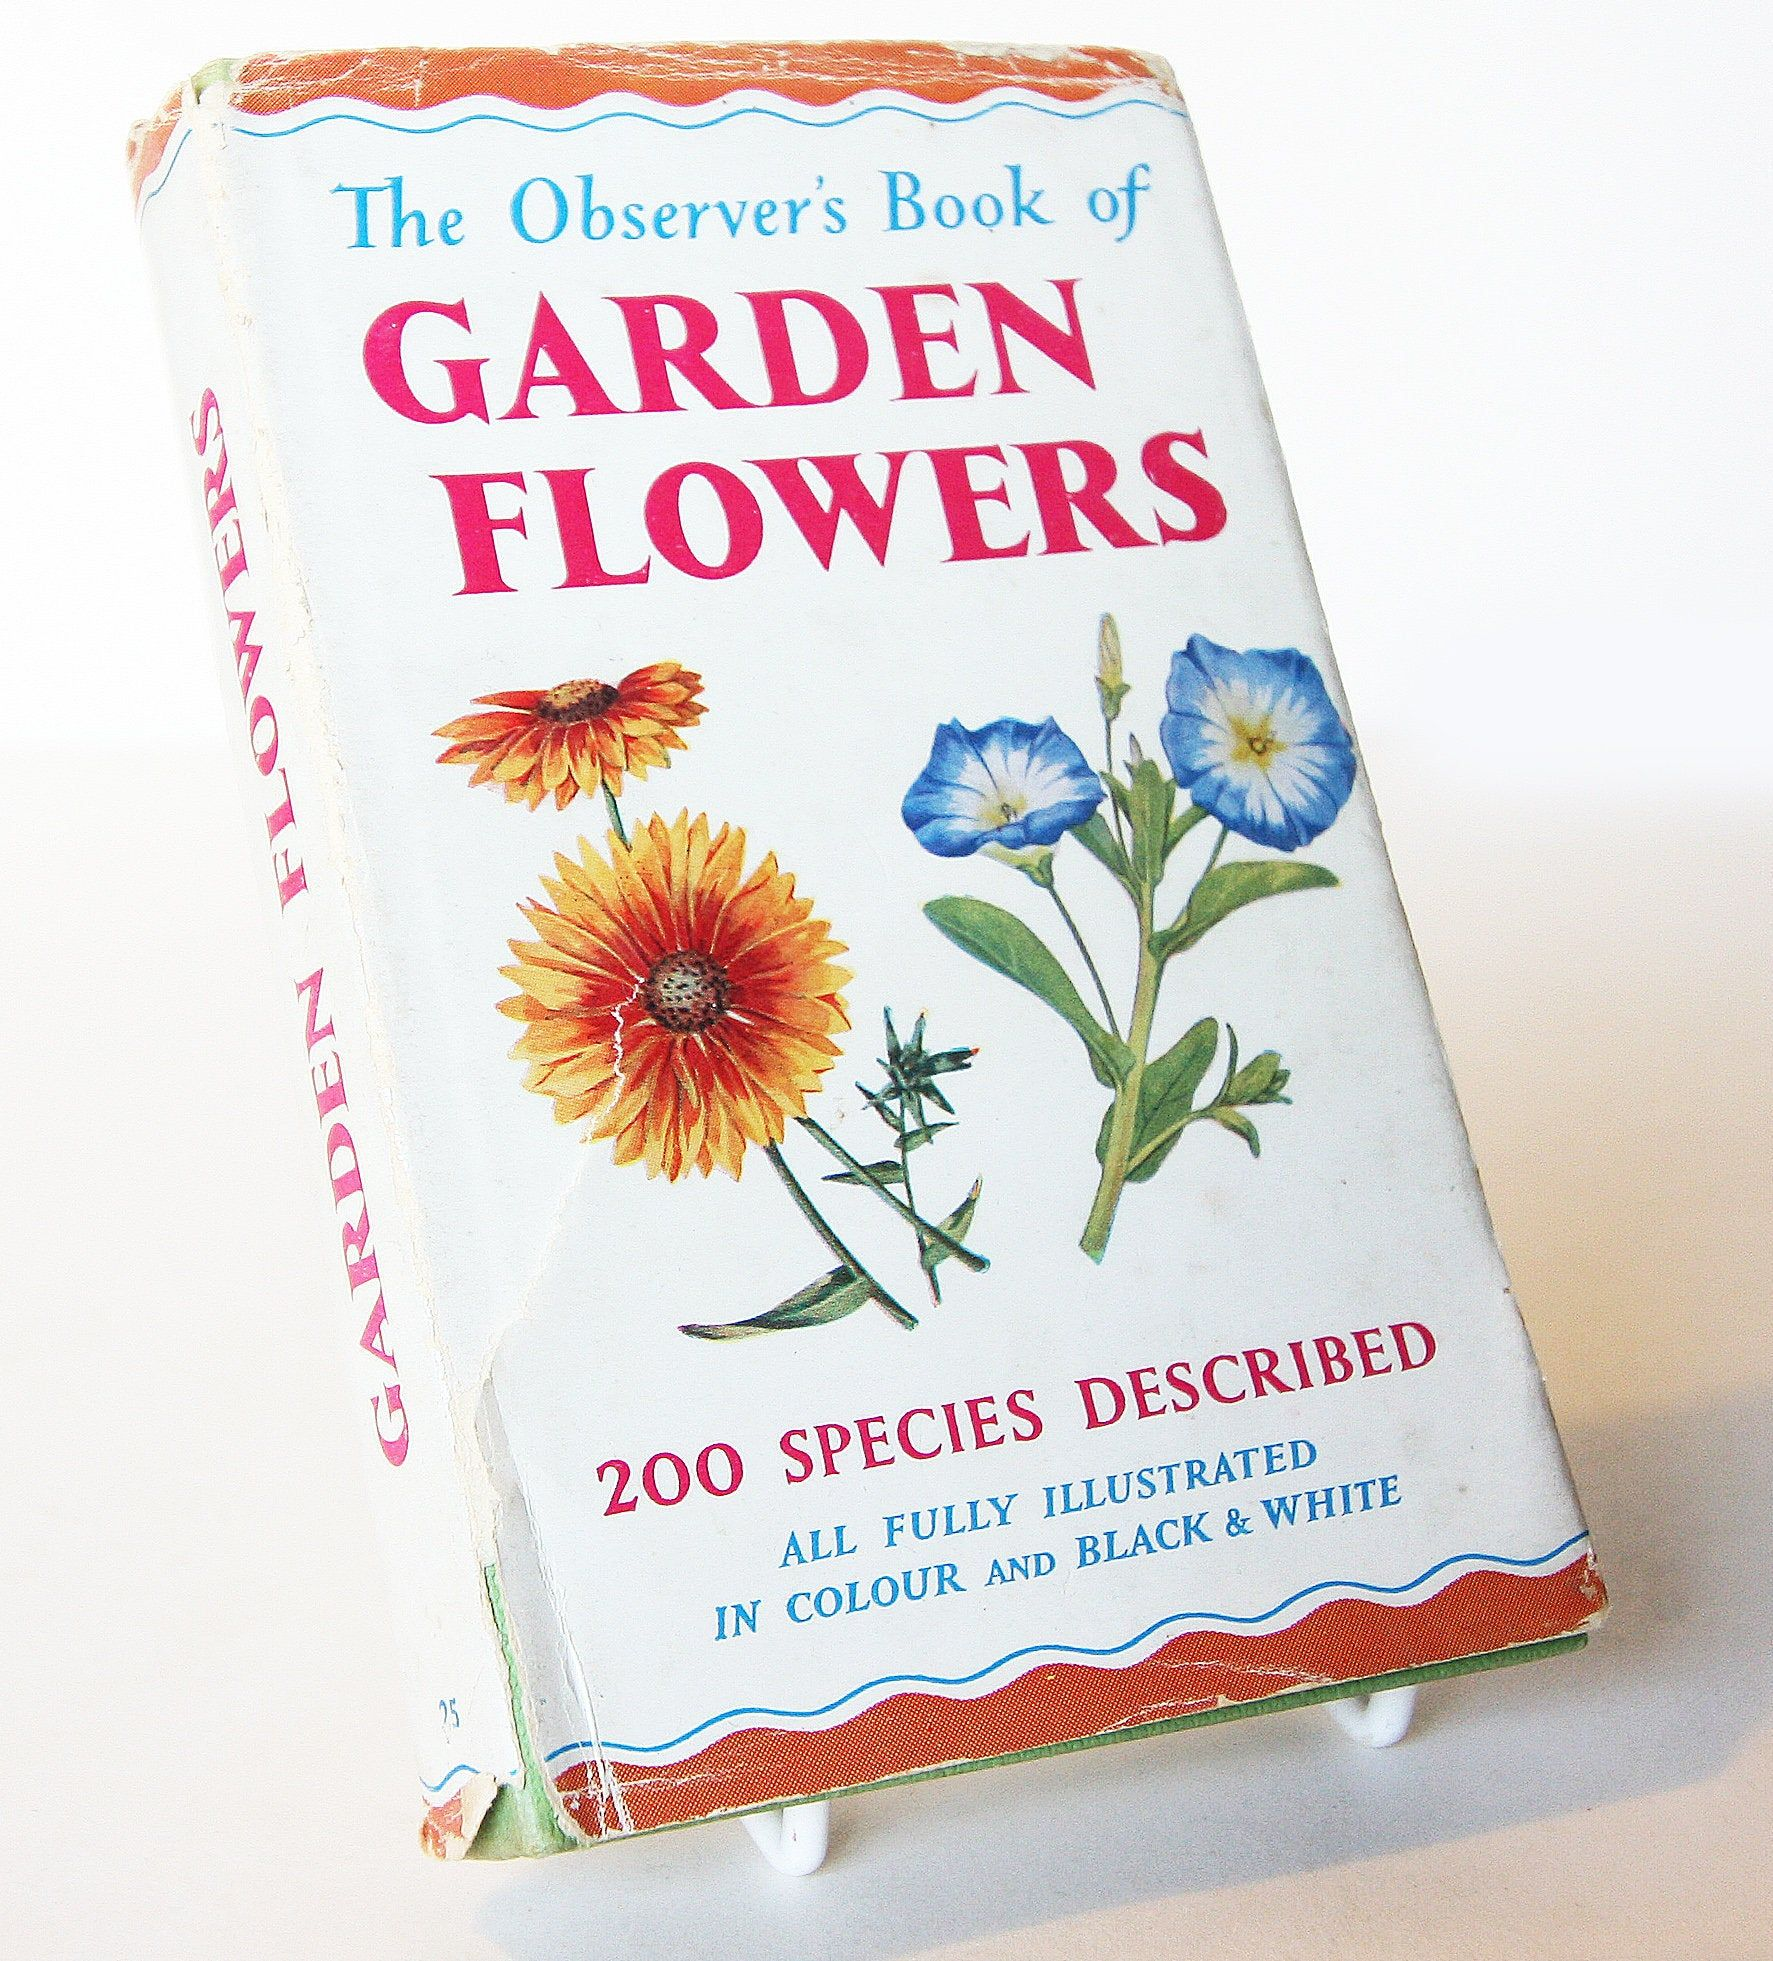 Vintage Garden Flowers Illustrated Plants 50s Flower Picture Book Flowers Guide Old Retro Book Flowers Flower Pictures Flower Guide